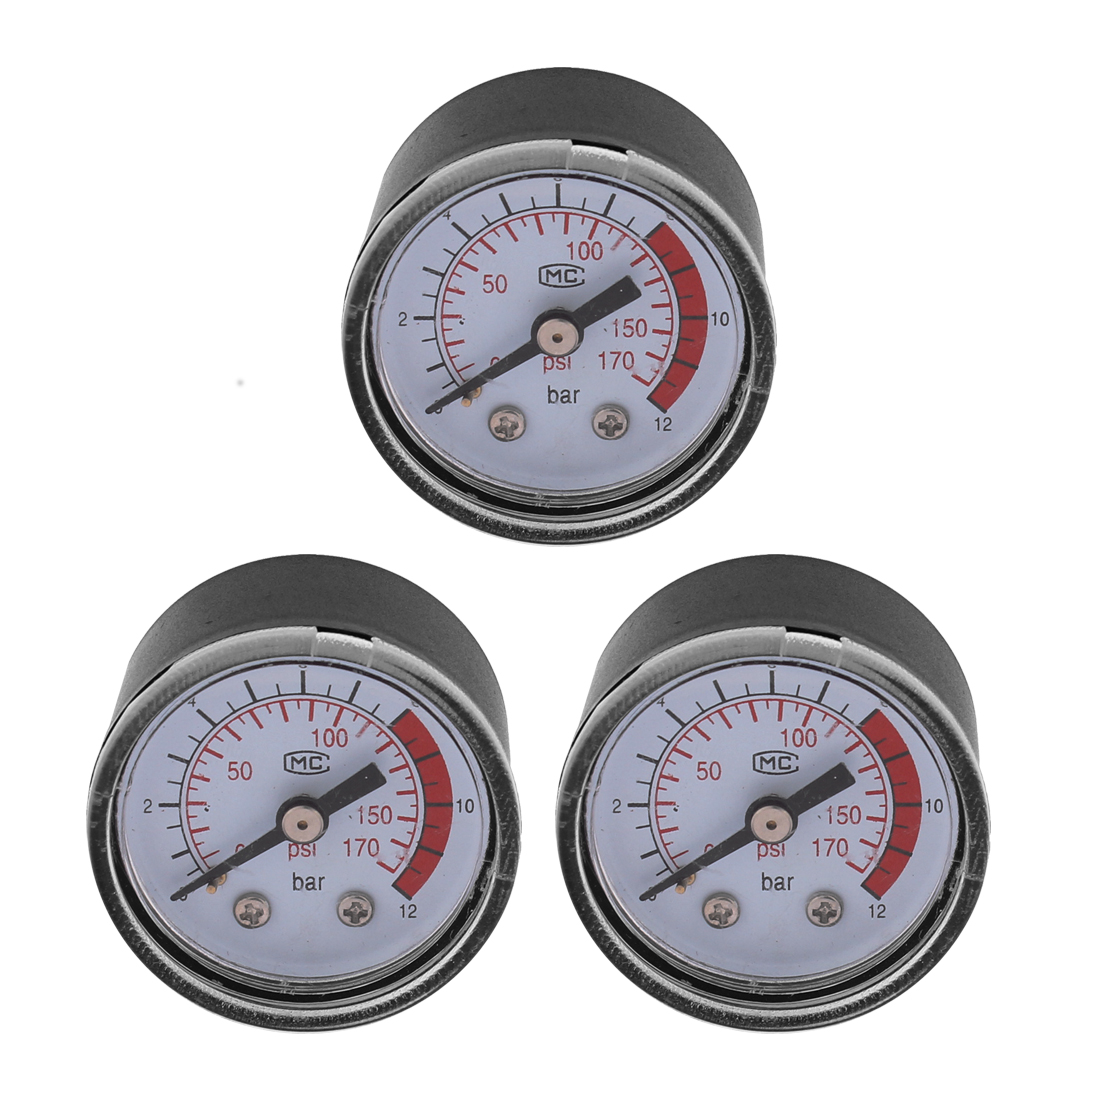 Air Compressor 1/8BSP 10mm Male Thread Round Dial Pressure Compressor Gauge 0-12Bar 0-170 Psi 3 Pcs